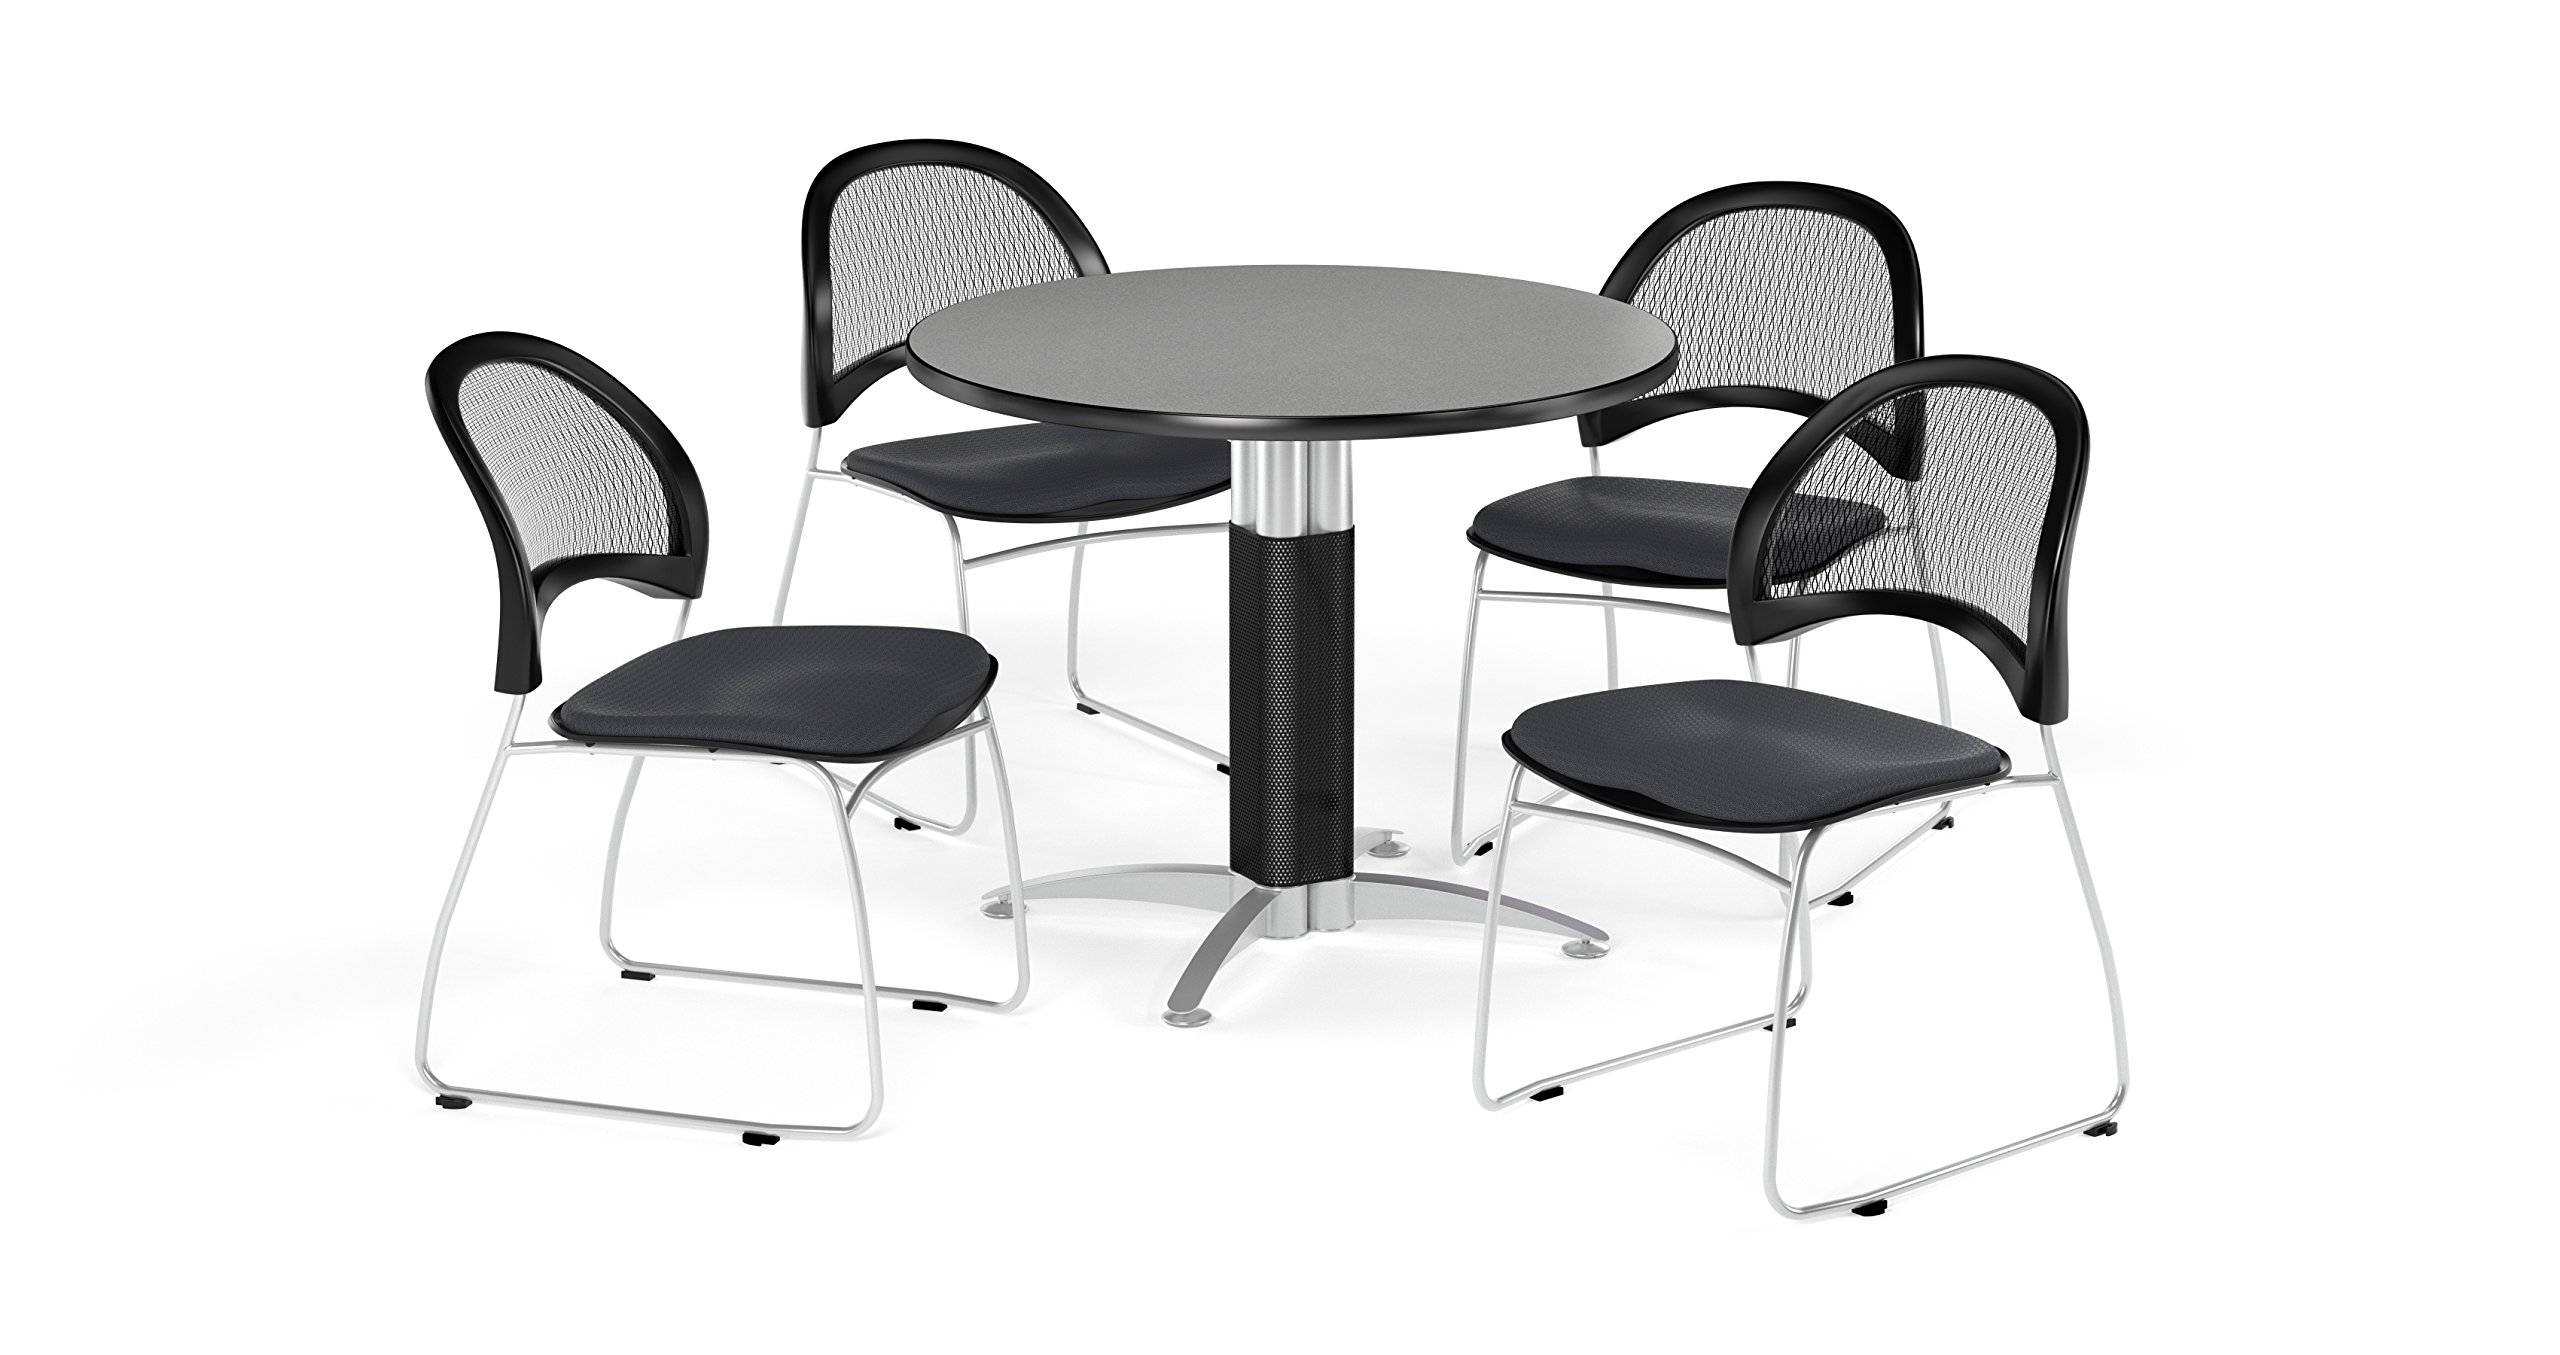 OFM PKG-BRK-175-0028 Breakroom Package, Gray Nebula Table/Slate Gray Chair